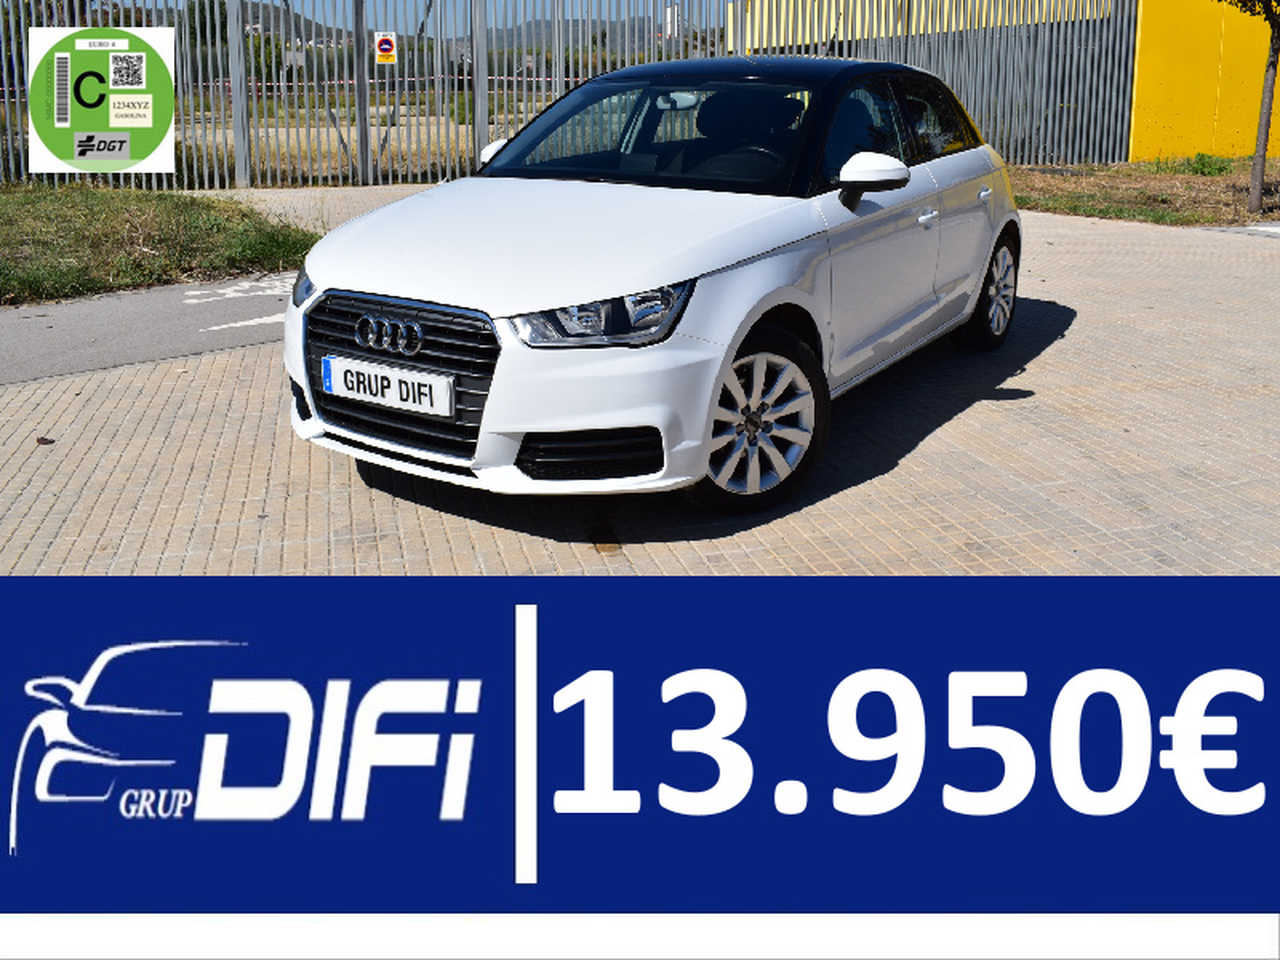 Audi A1  Sportback 1.4 TDI 90CV Attraction 5p.   - Foto 1